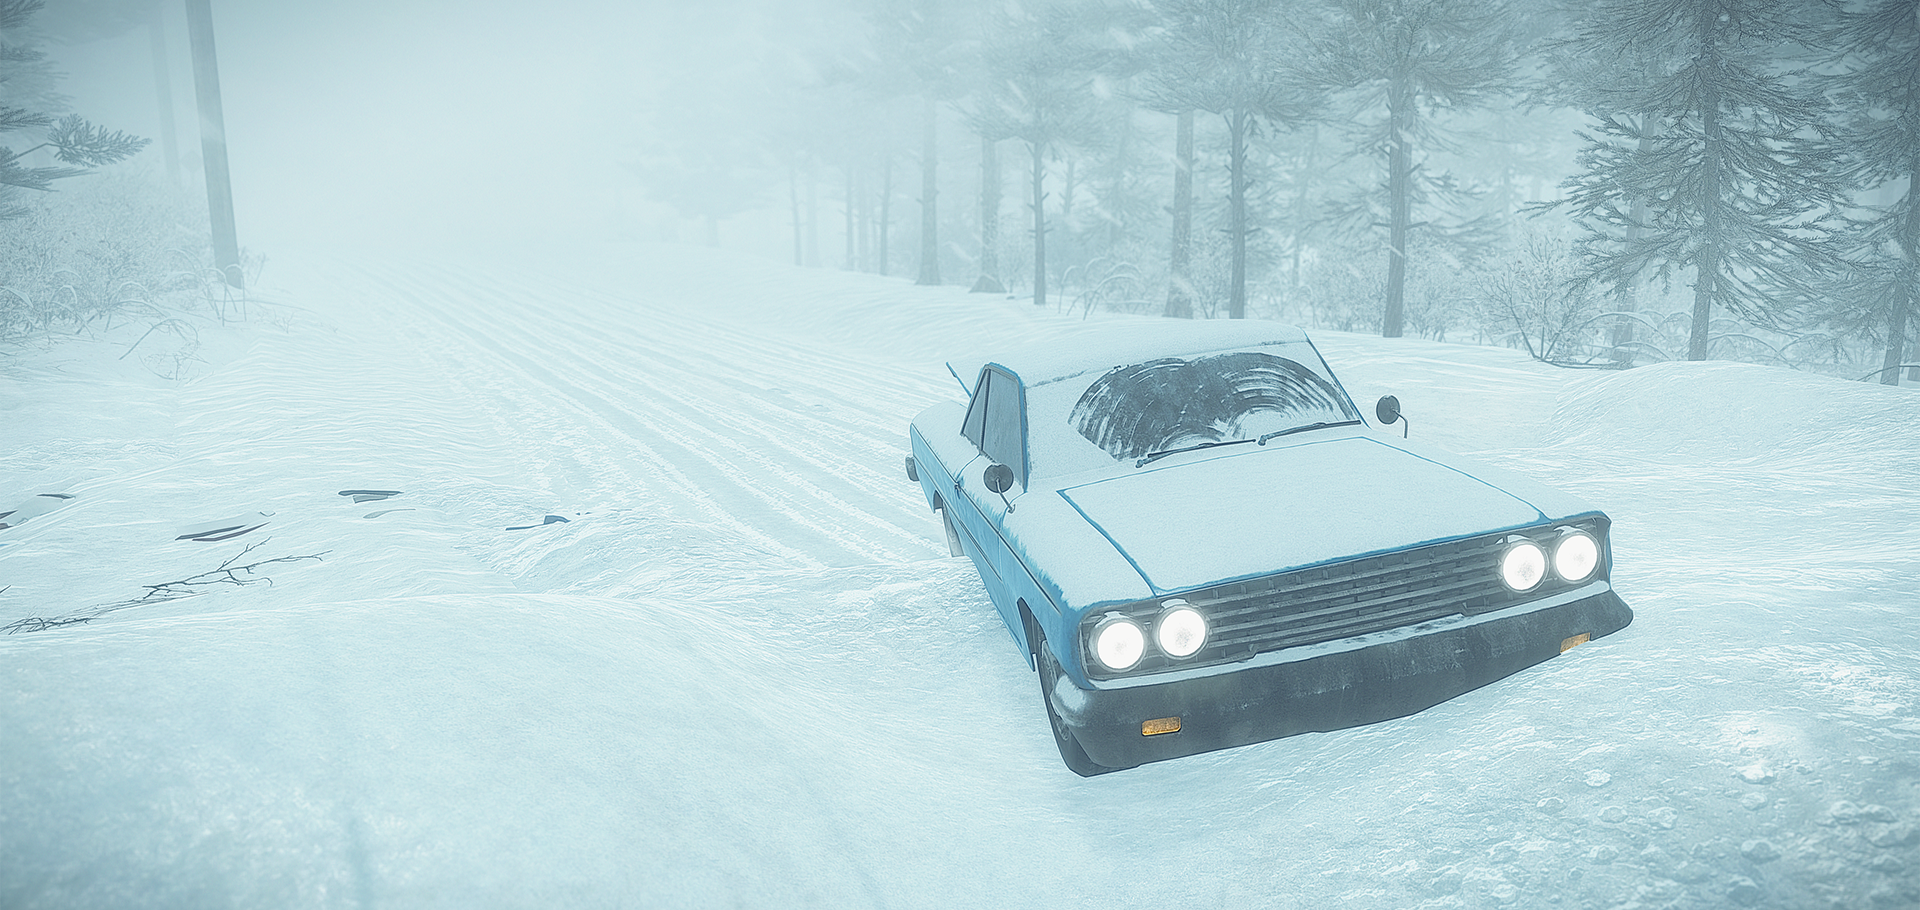 A screenshot from Kona - a car in the snow copy - hero image